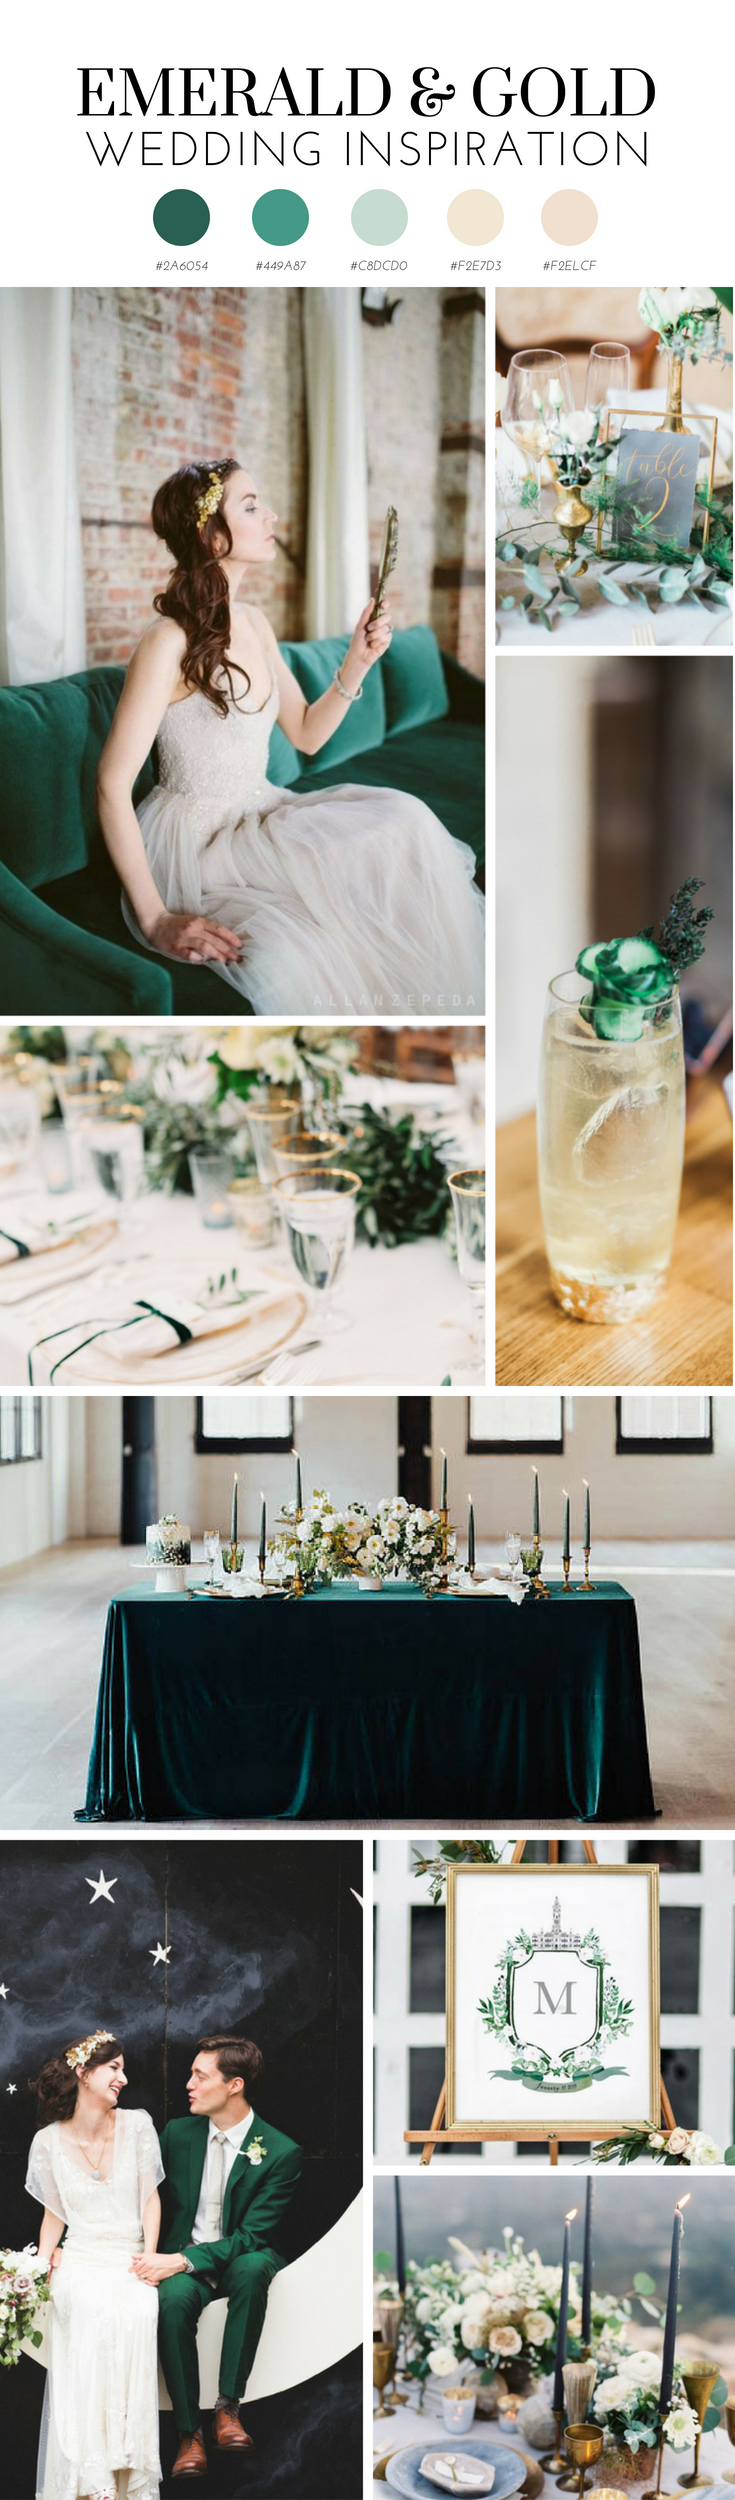 Emerald and Gold Wedding Inspiration.png